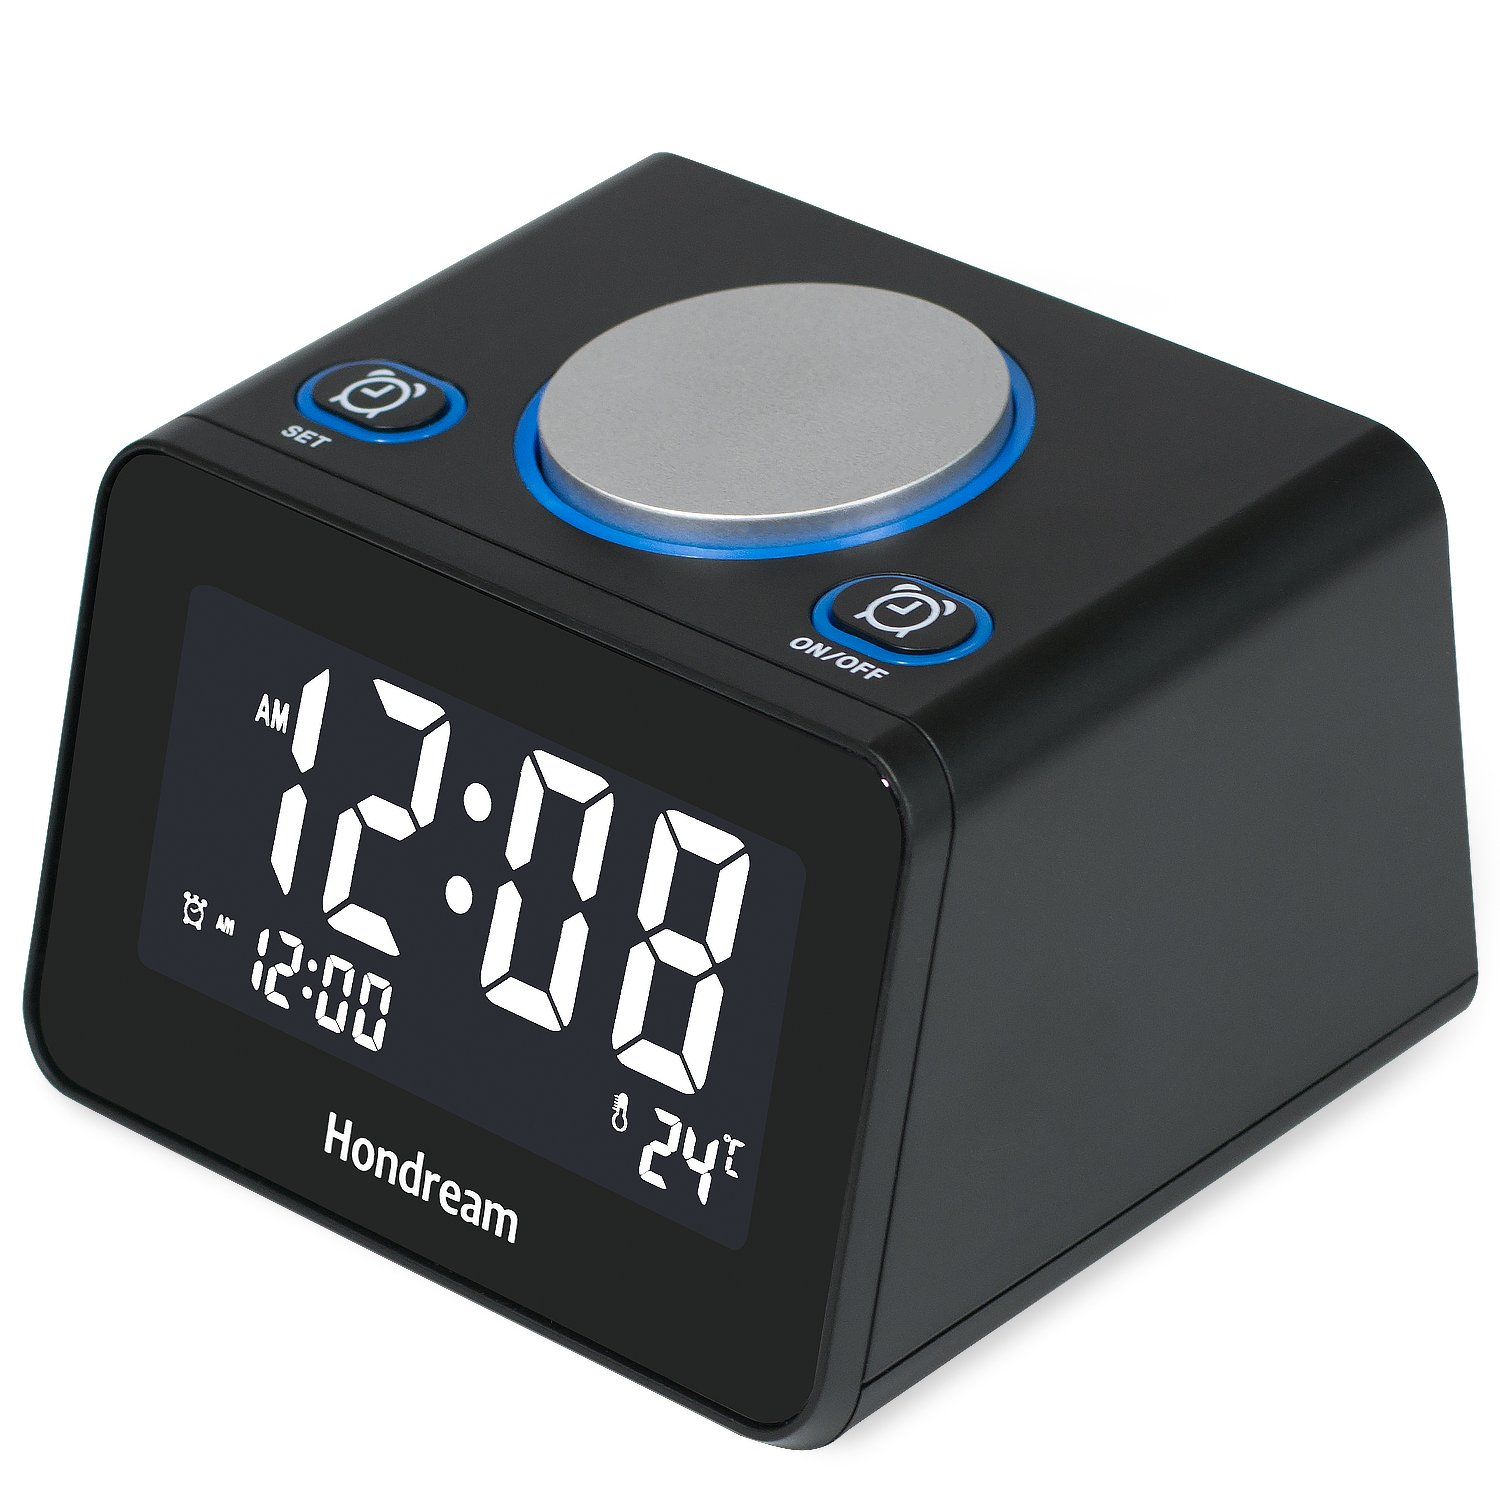 Hondream Digital Alarm Clock Radio with FM radio Snooze for Bedrooms H-03 USB Charger Dimmer